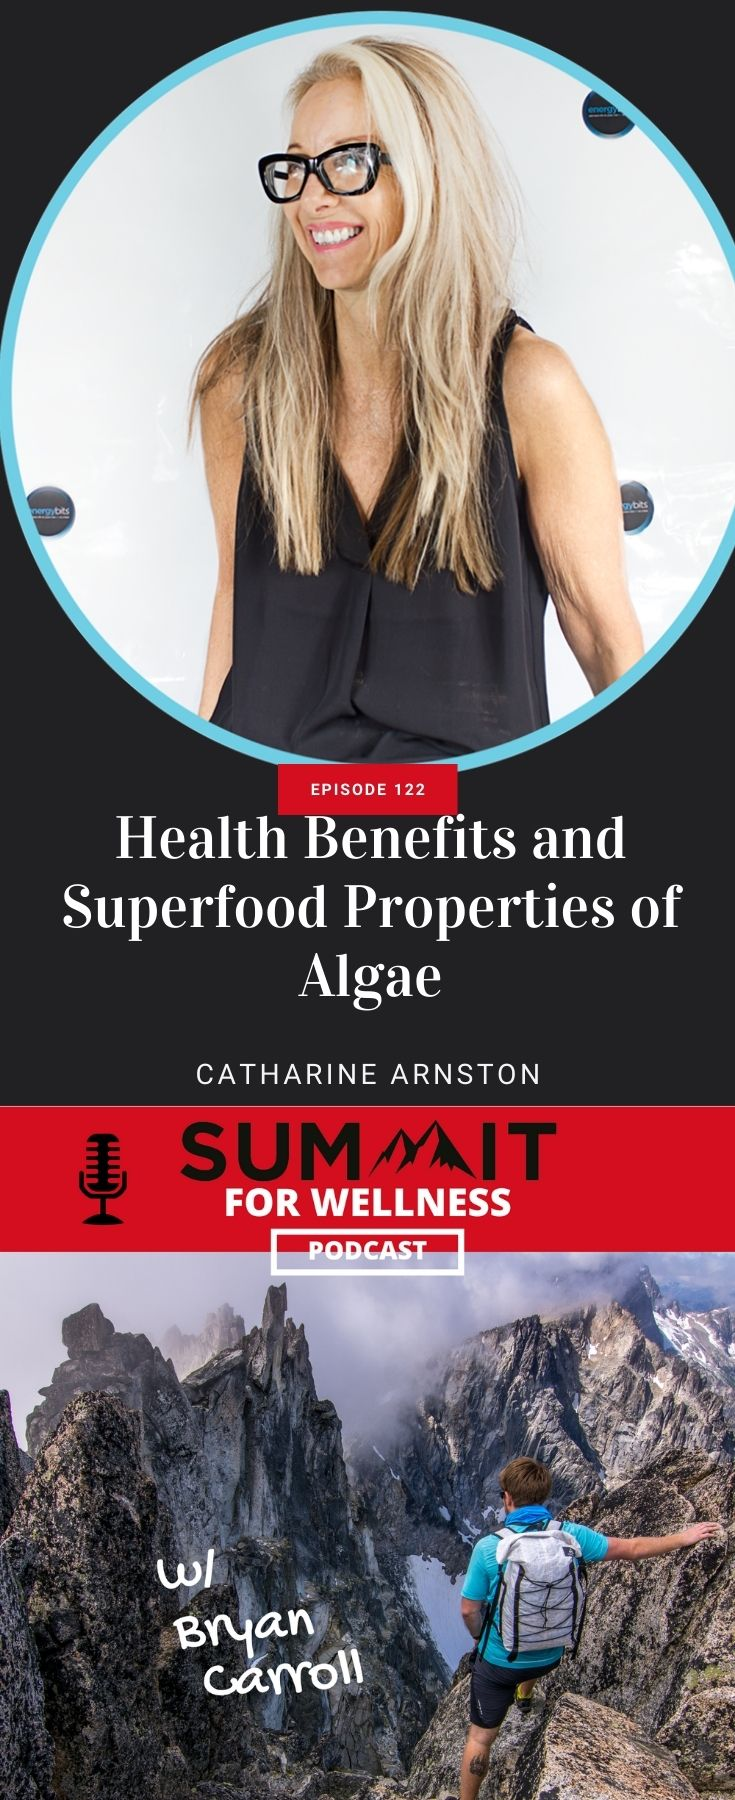 Catharine Arnston talks about how algae can be beneficial for health